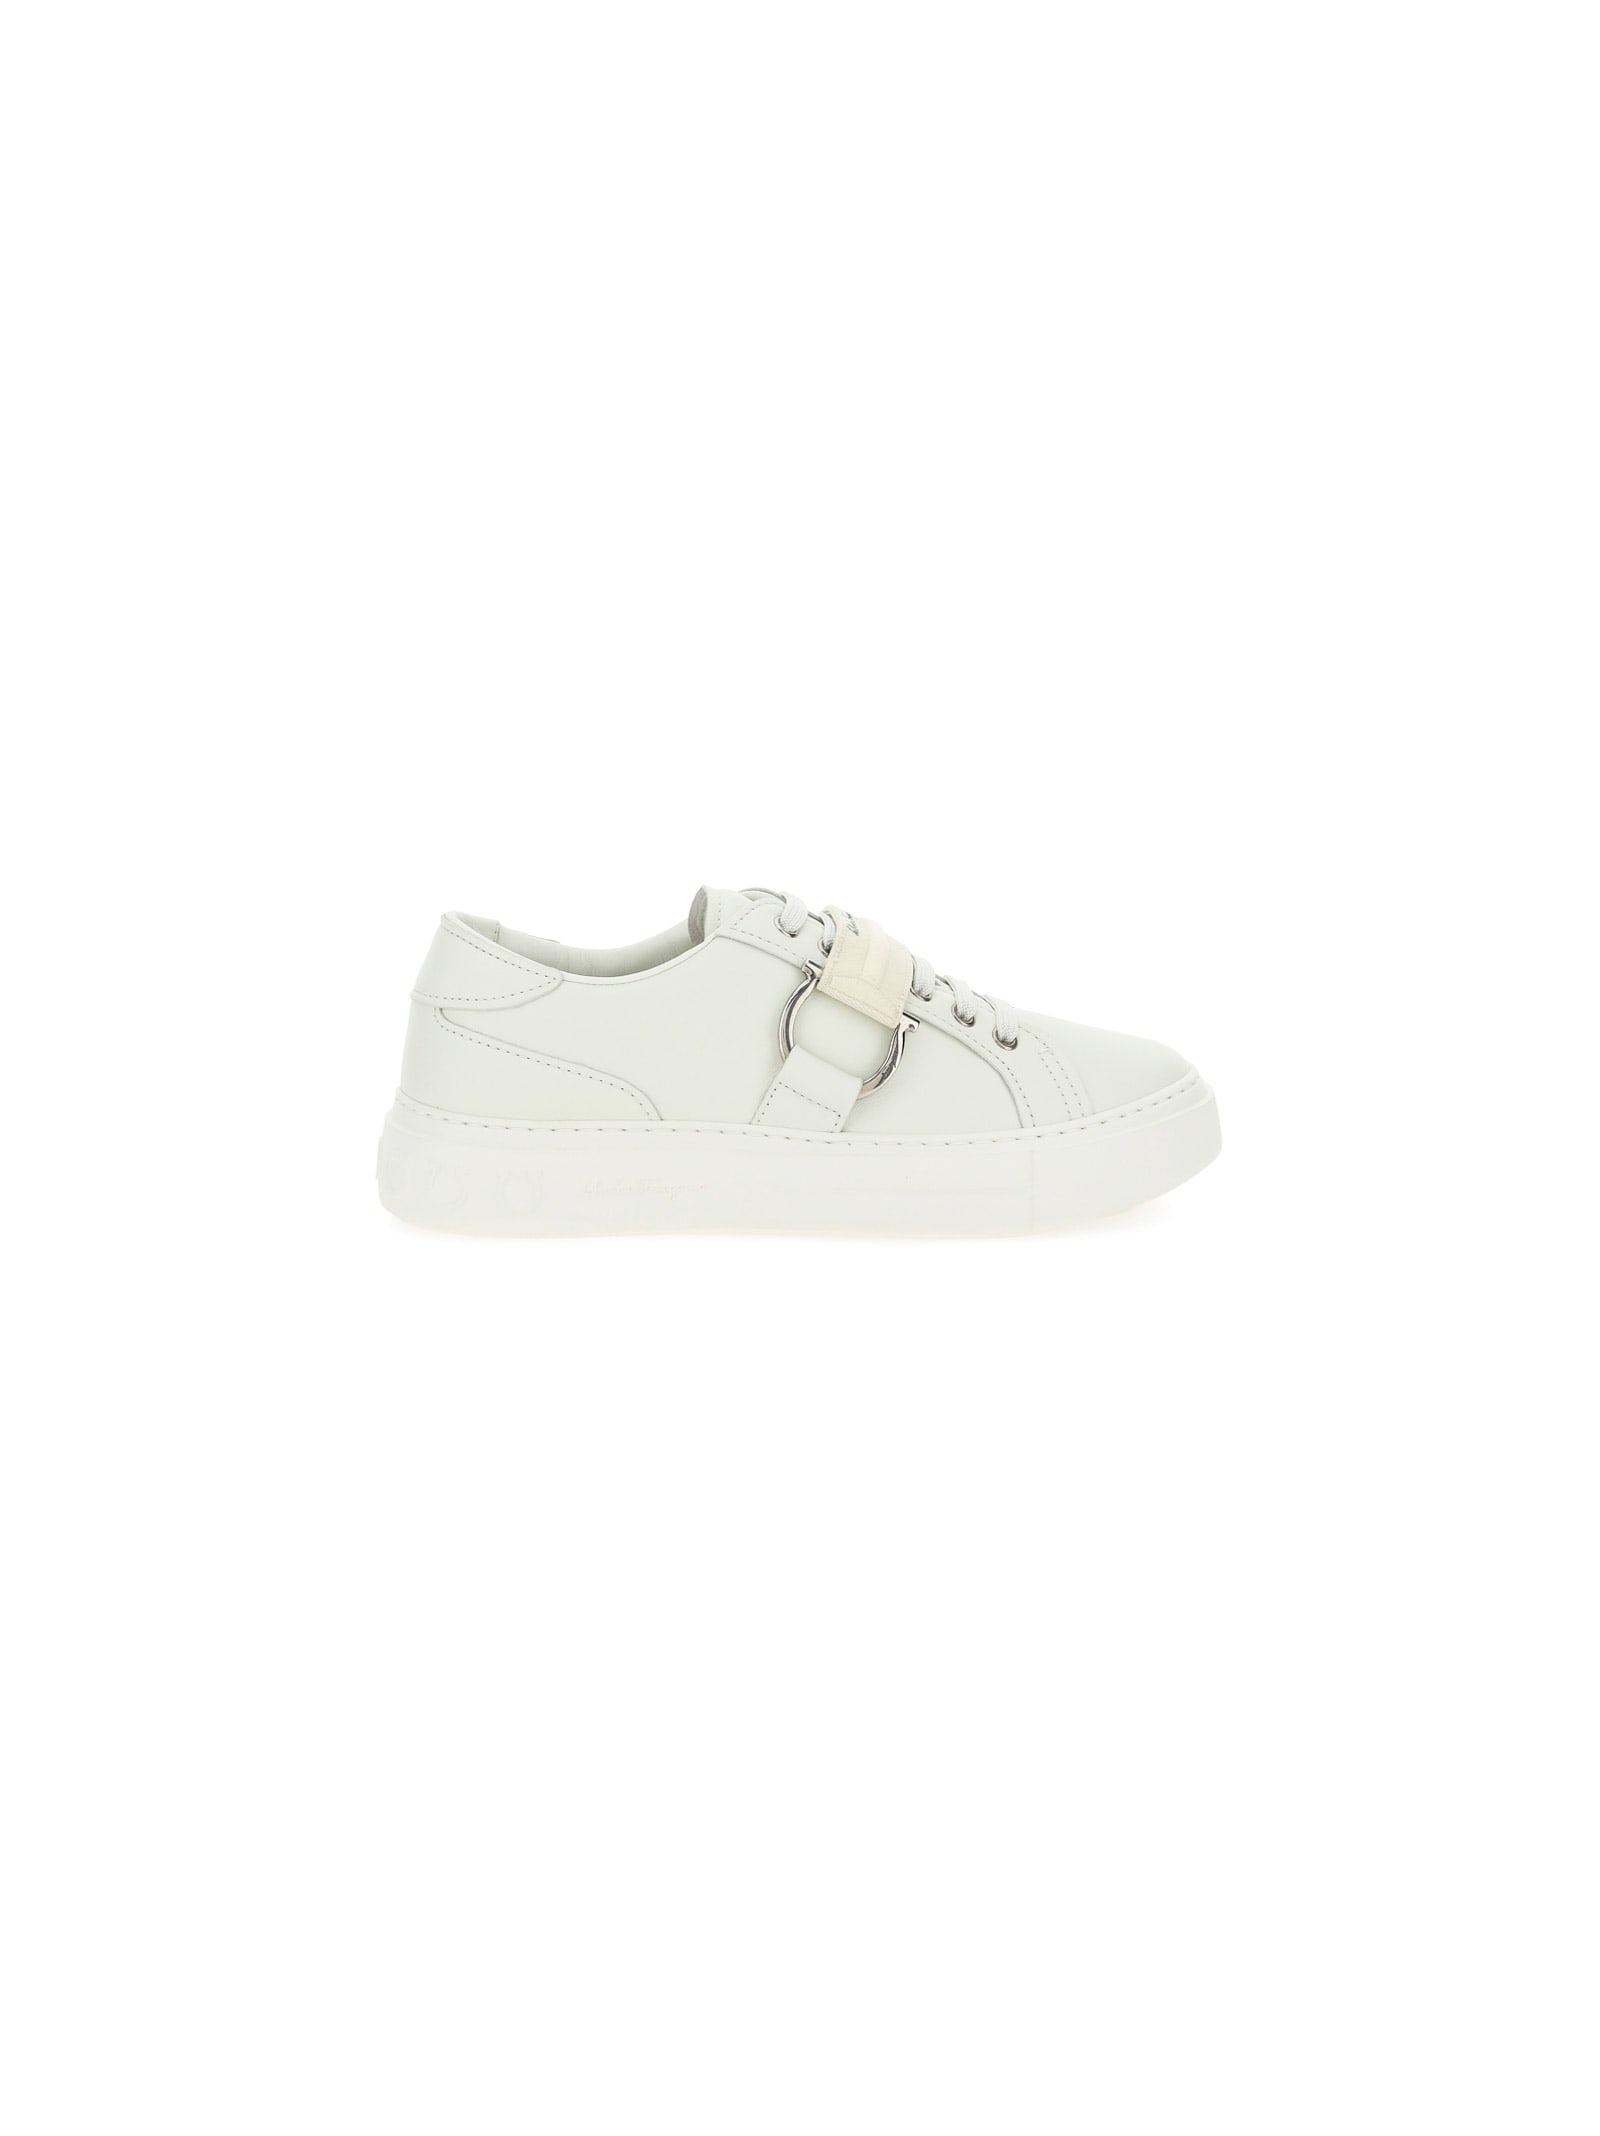 Salvatore Ferragamo Leathers PHARREL SNEAKERS